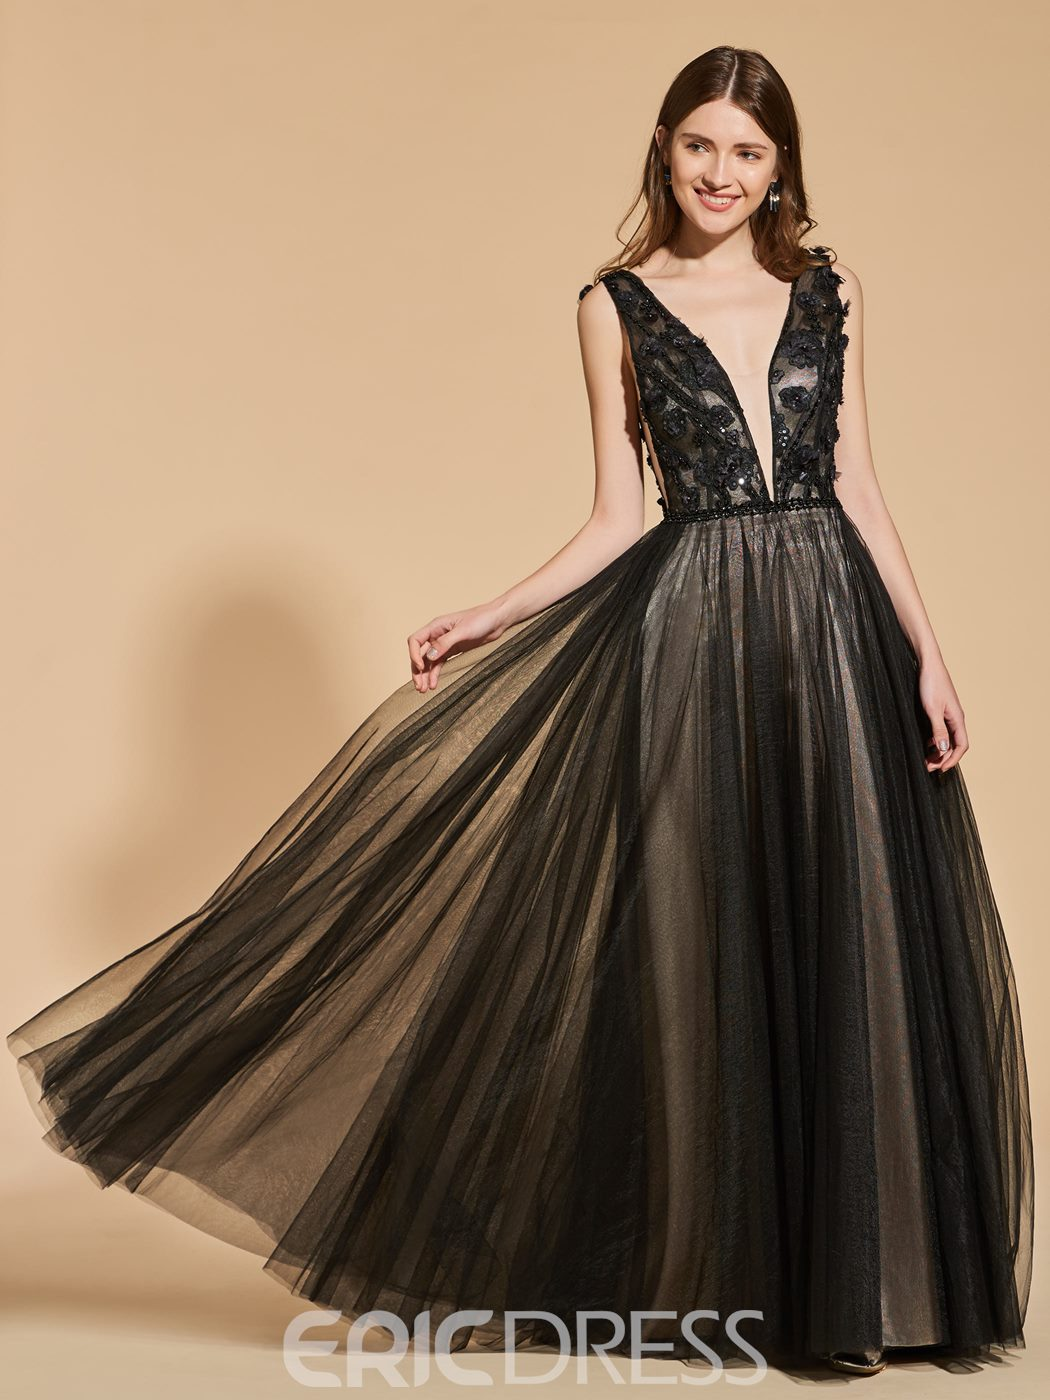 Ericdress A Line V Neck Applique Backless Black Prom Dress With Beadings